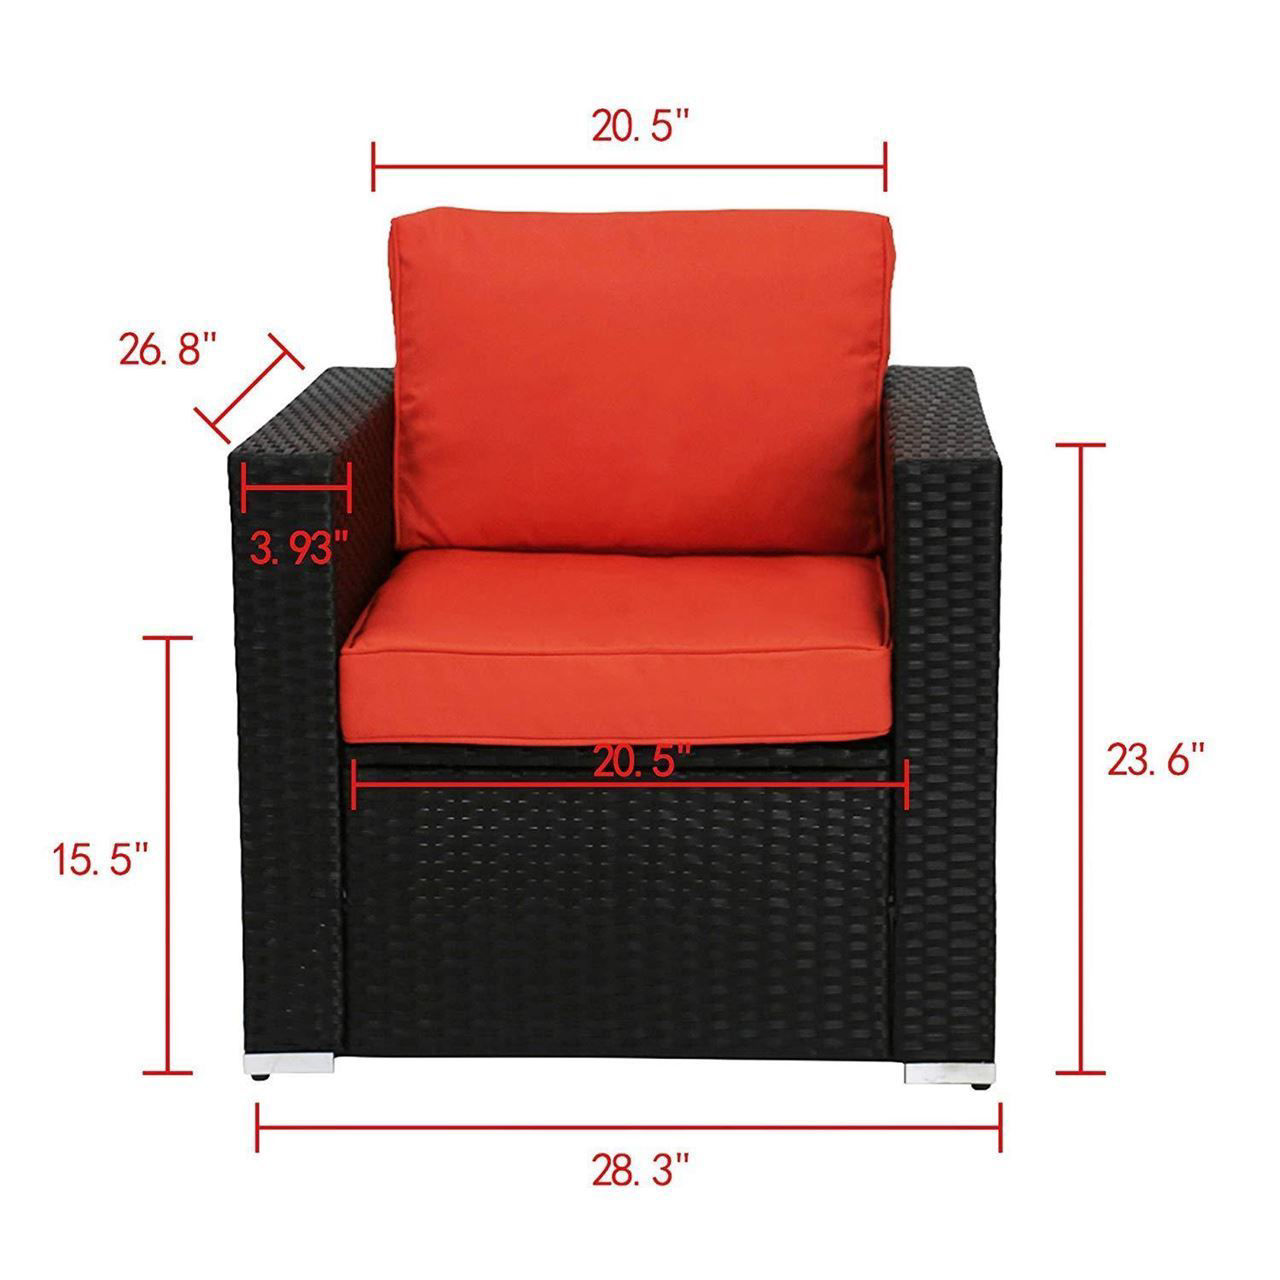 Picture of Outdoor Furniture Set with Orange Cushions - 4 pcs